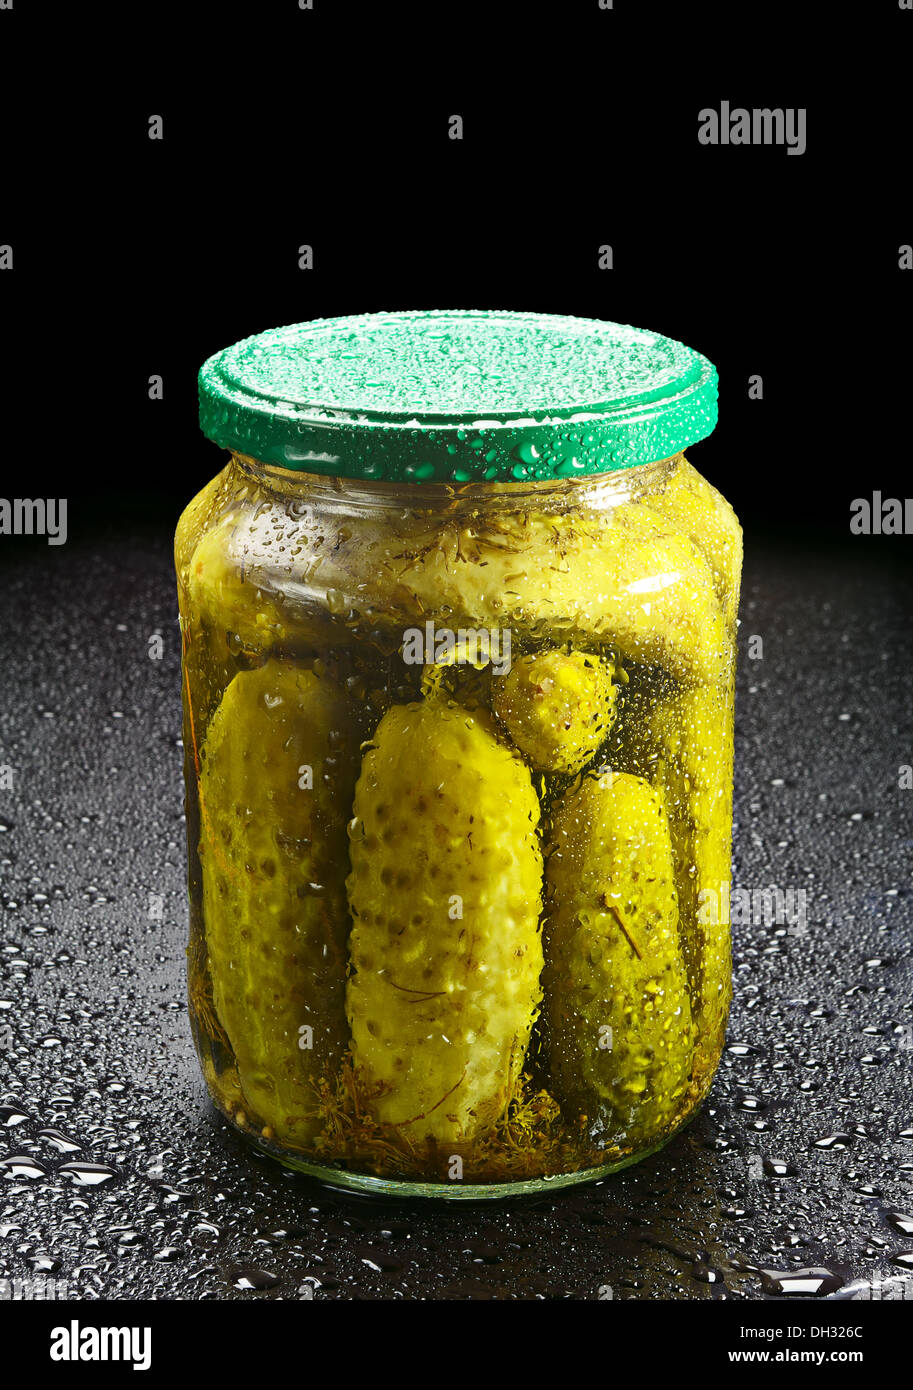 Pickled cucumber in glass jar with water drops on black - Stock Image